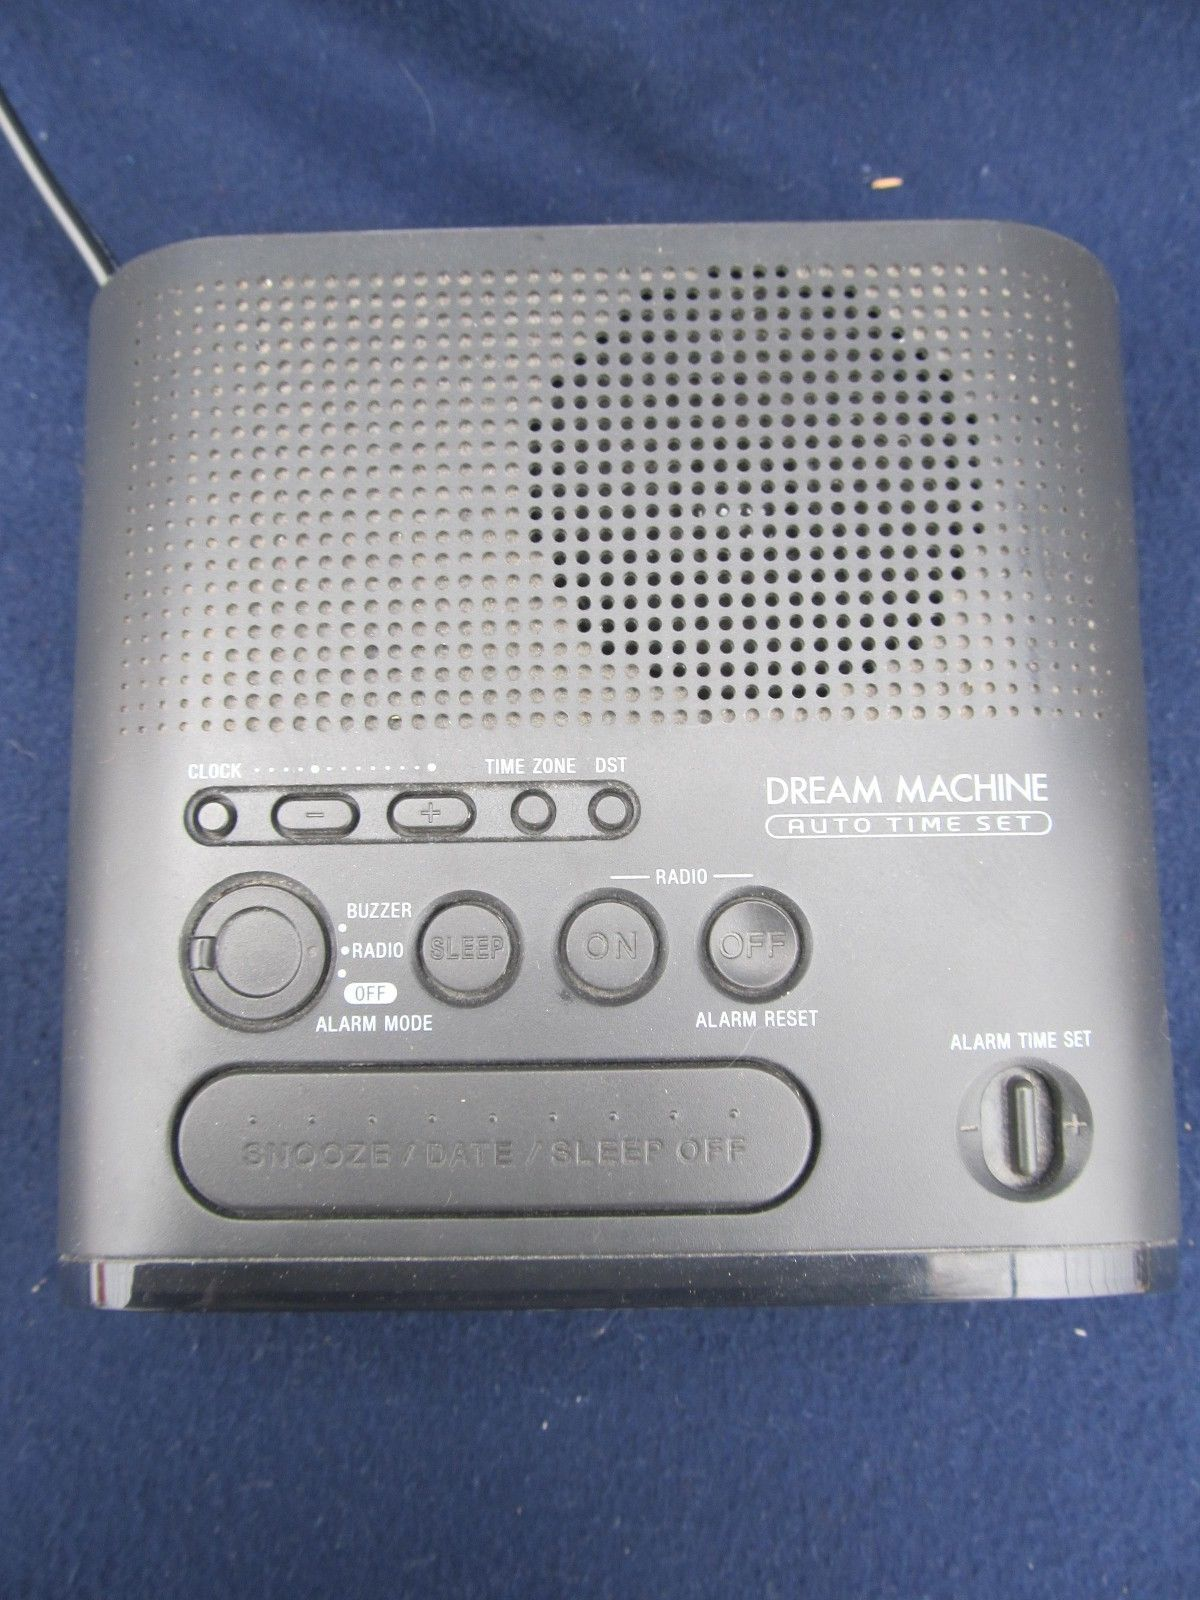 Sony Dream Machine ICF-C218 AM/FM Alarm Clock Radio with Large LED Display